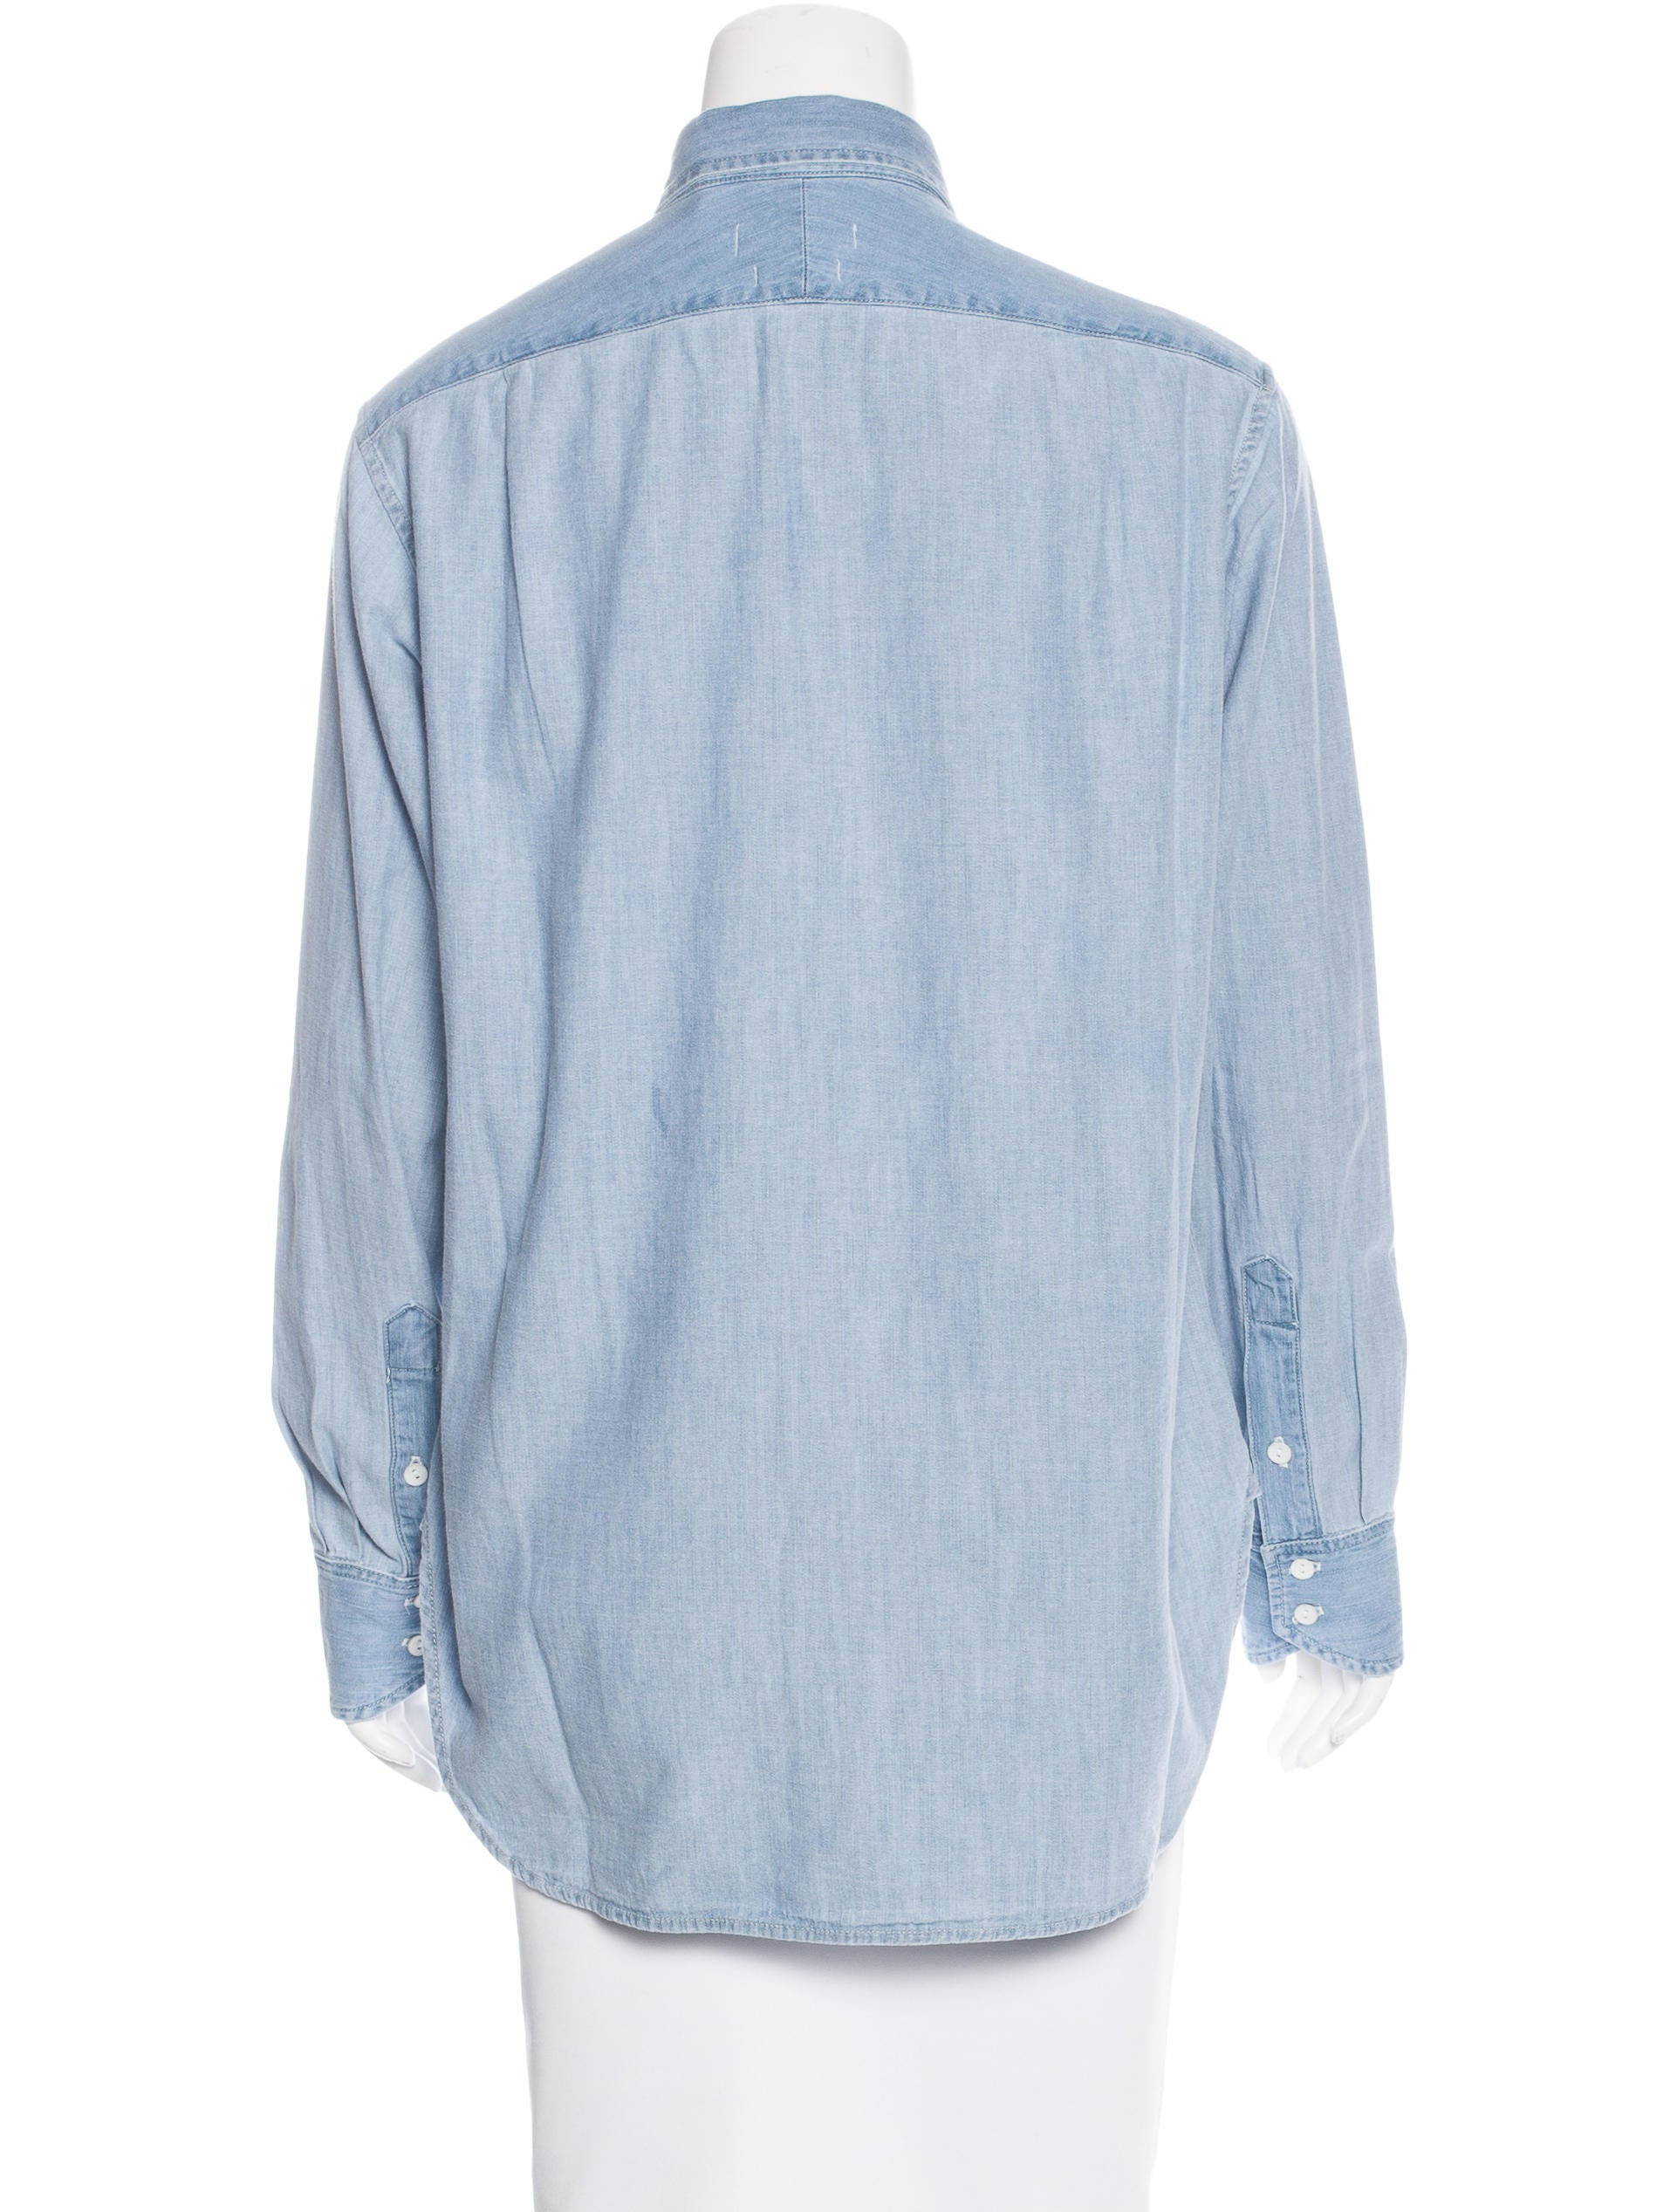 Rag bone chambray button up top w tags tops for Chambray top